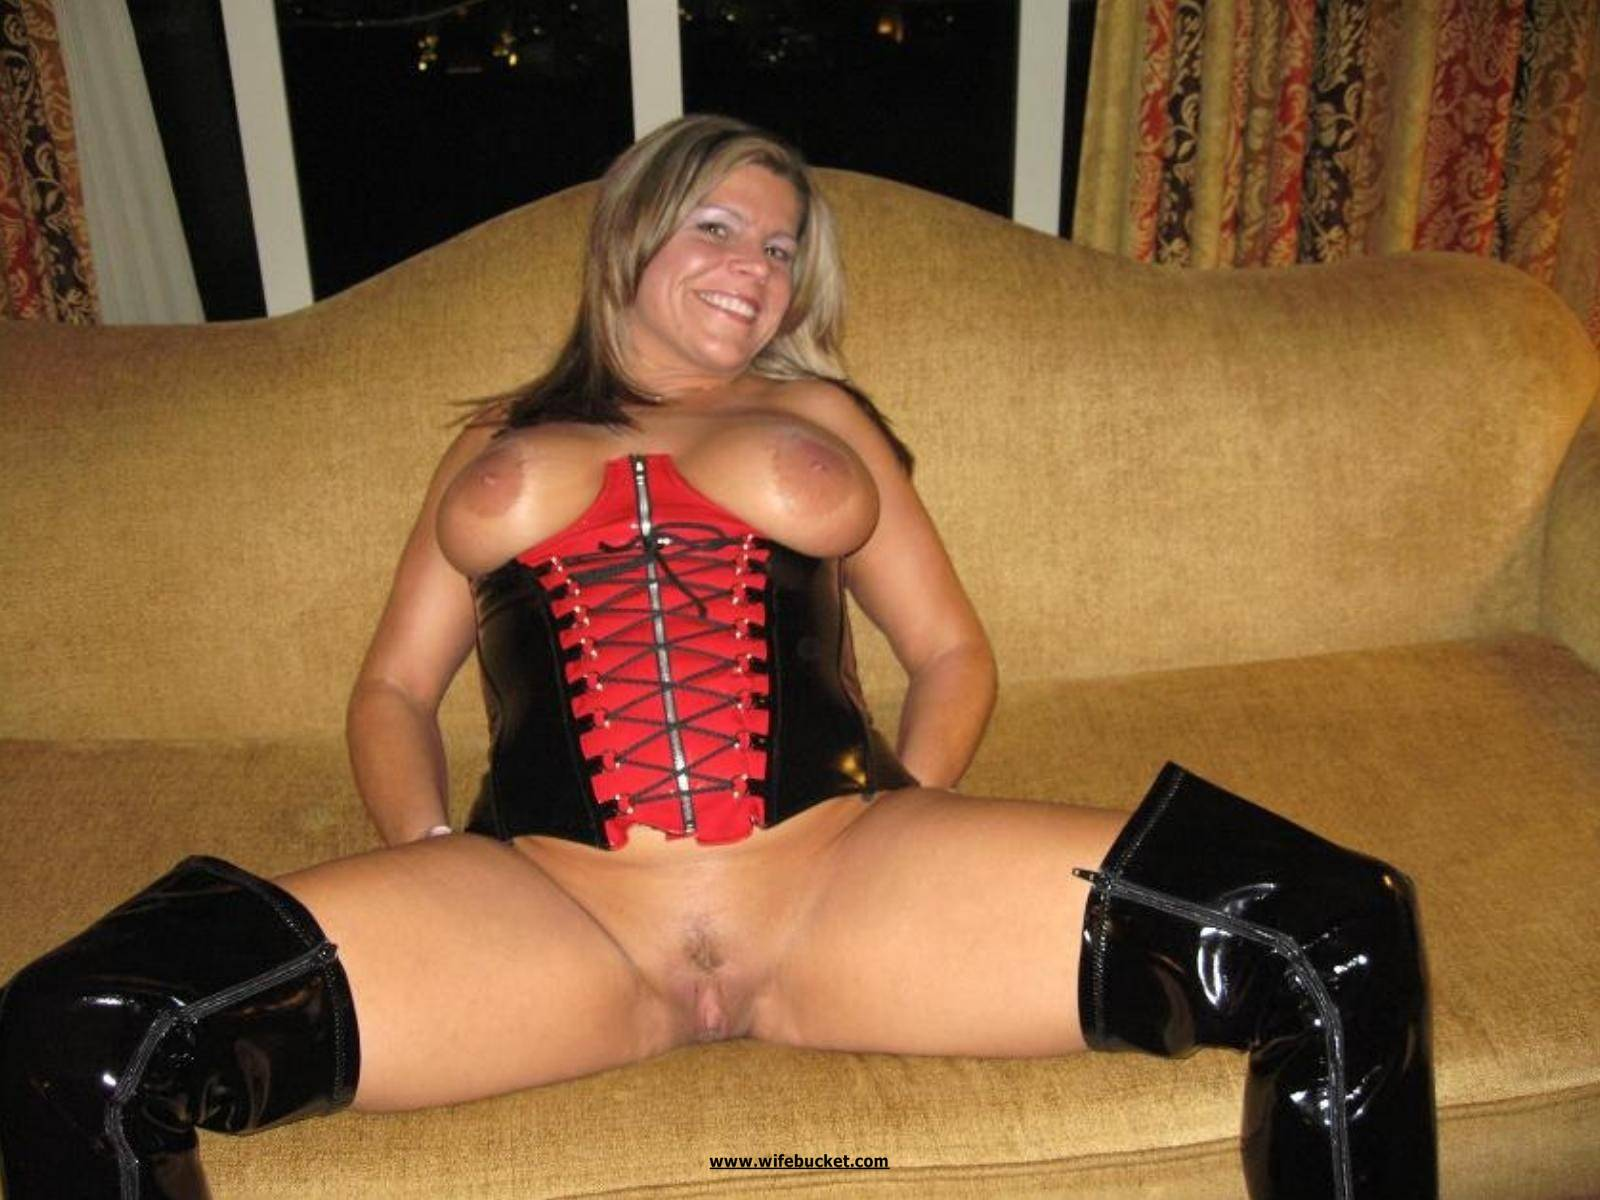 Boots and tits photos fucking image